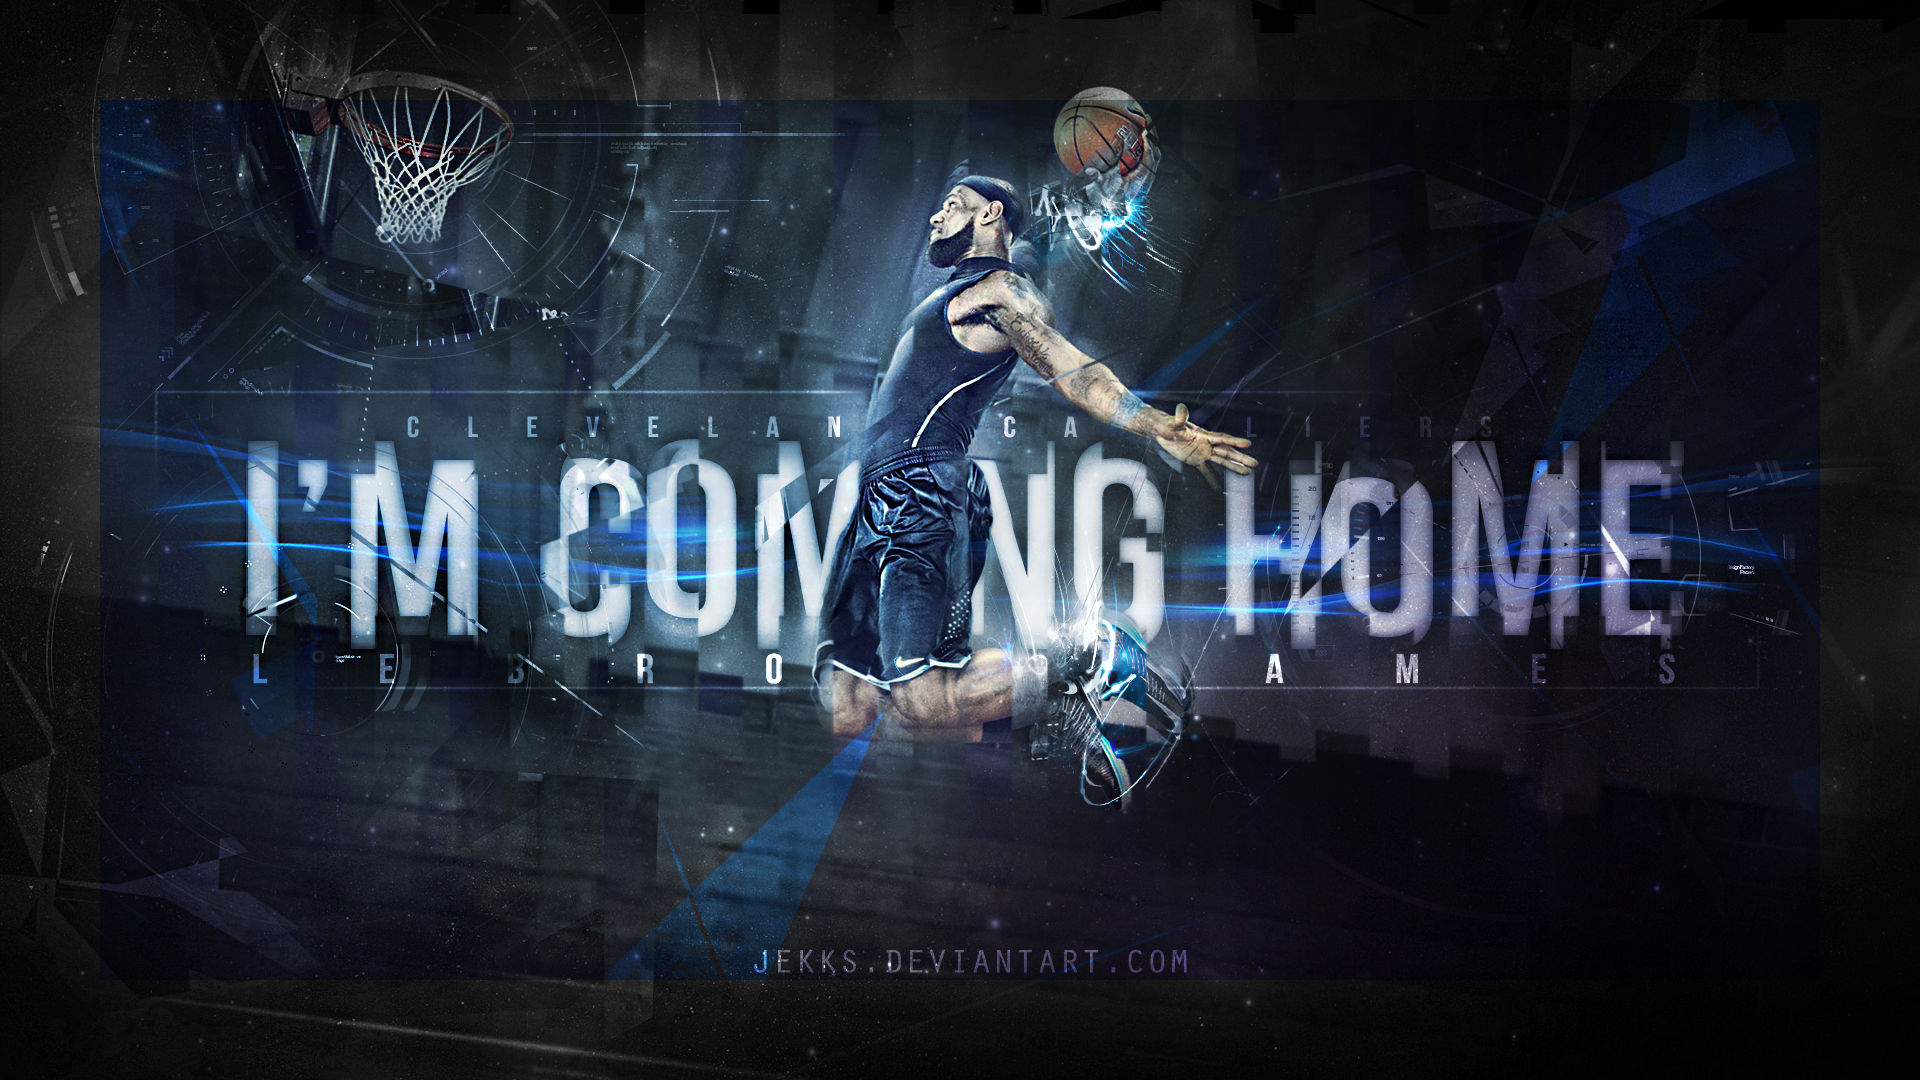 Lebron James 2 1920x1080